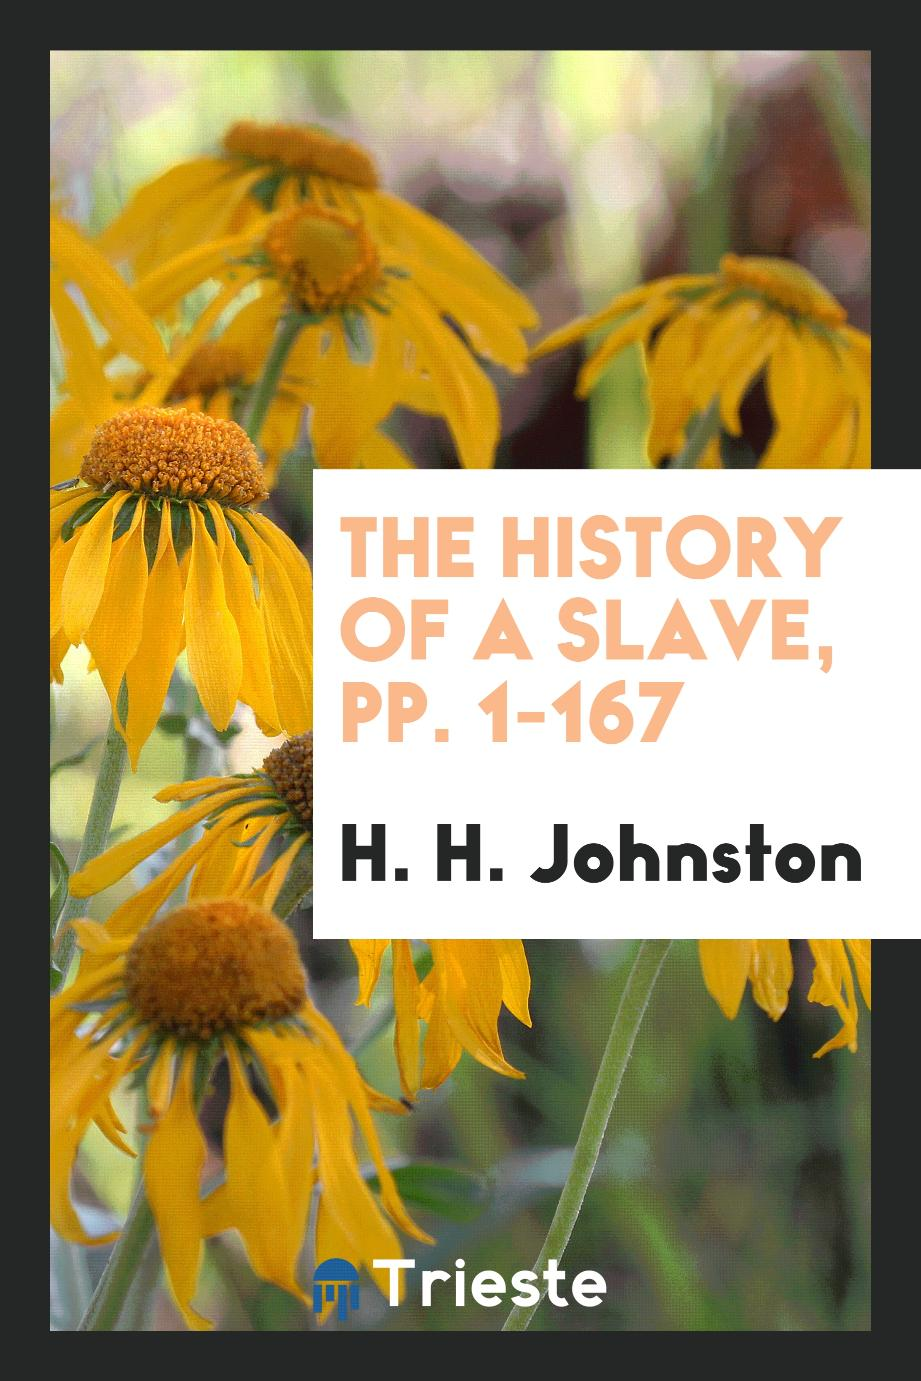 The History of a Slave, pp. 1-167